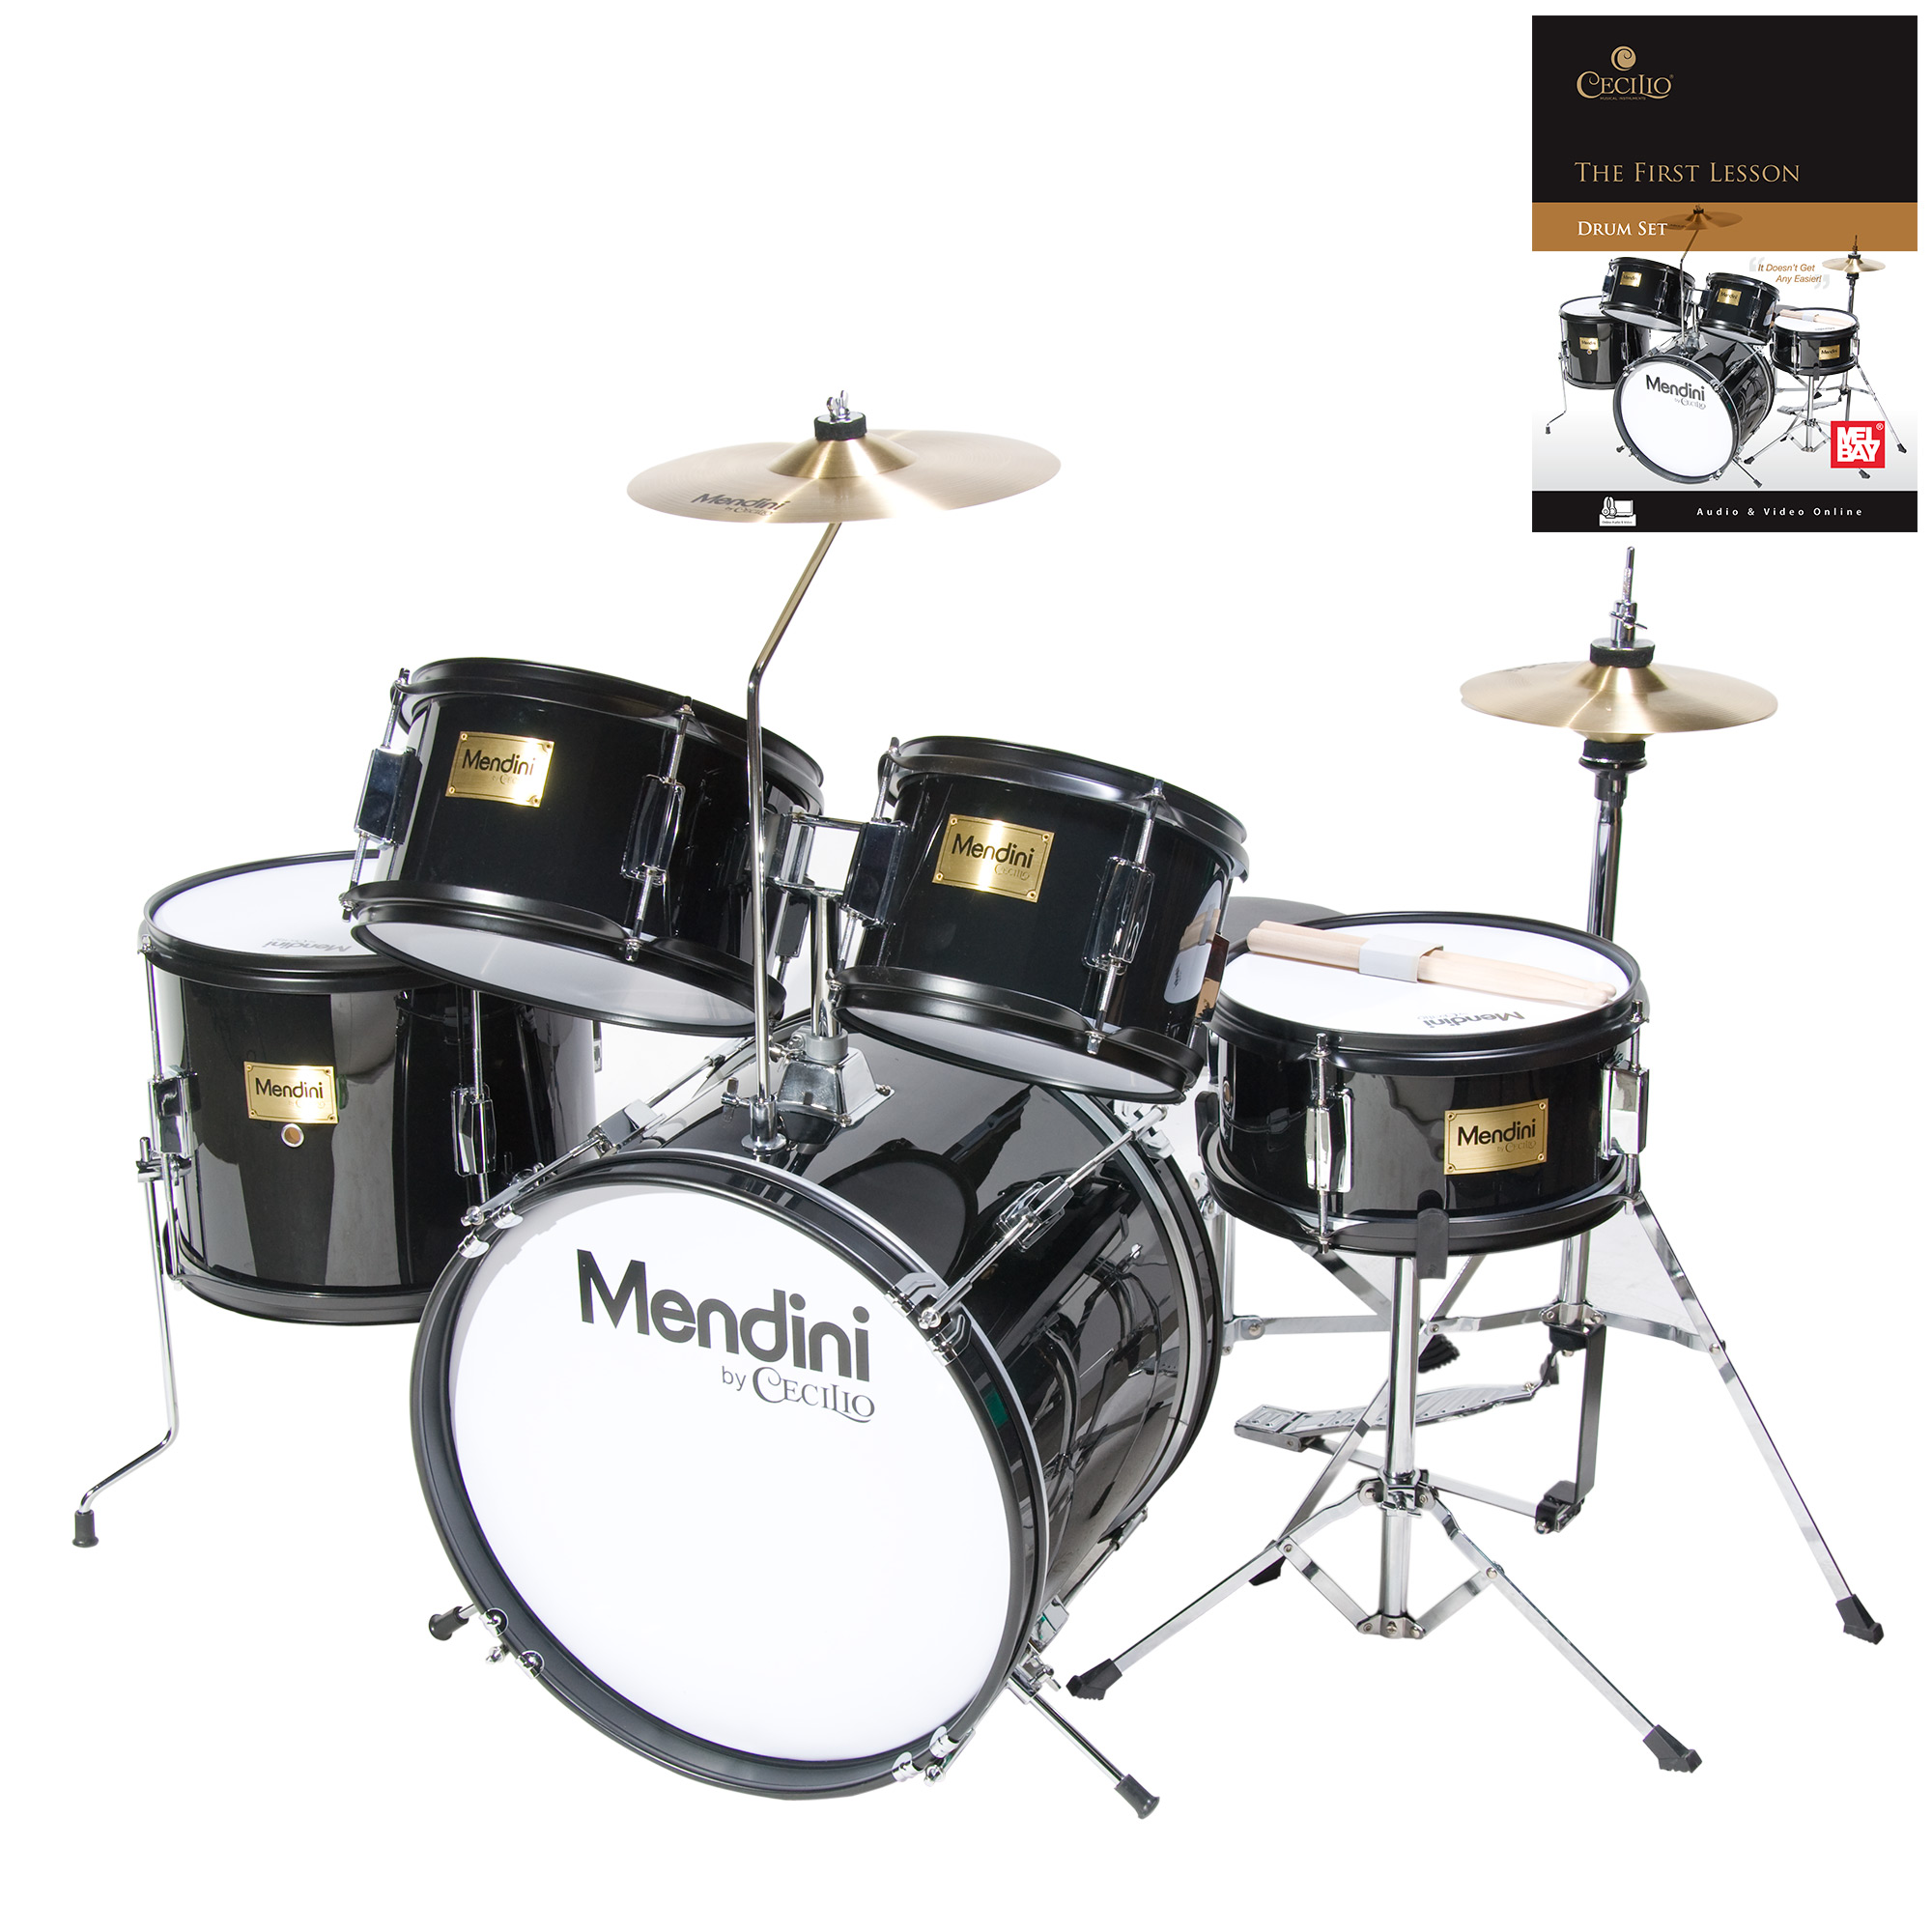 """Mendini by Cecilio 16"""" 5-Piece Complete Kids / Junior Drum Set with Adjustable Throne, Cymbal, Pedal, Drumsticks & Lesson Book, Metallic Black, MJDS-5-BK"""